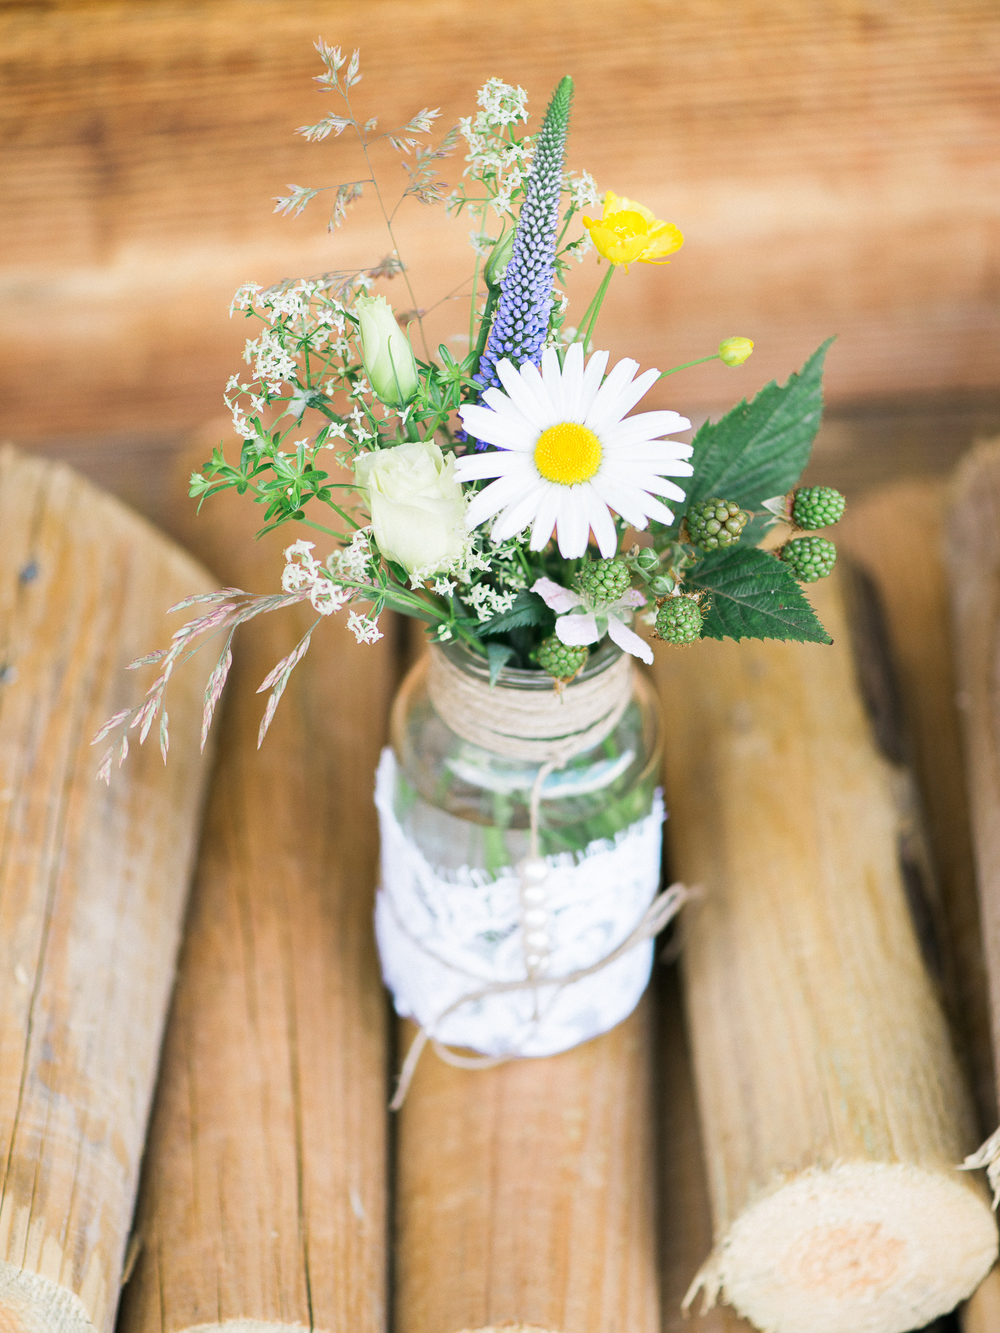 ideas for cute flowers in jar on weddings